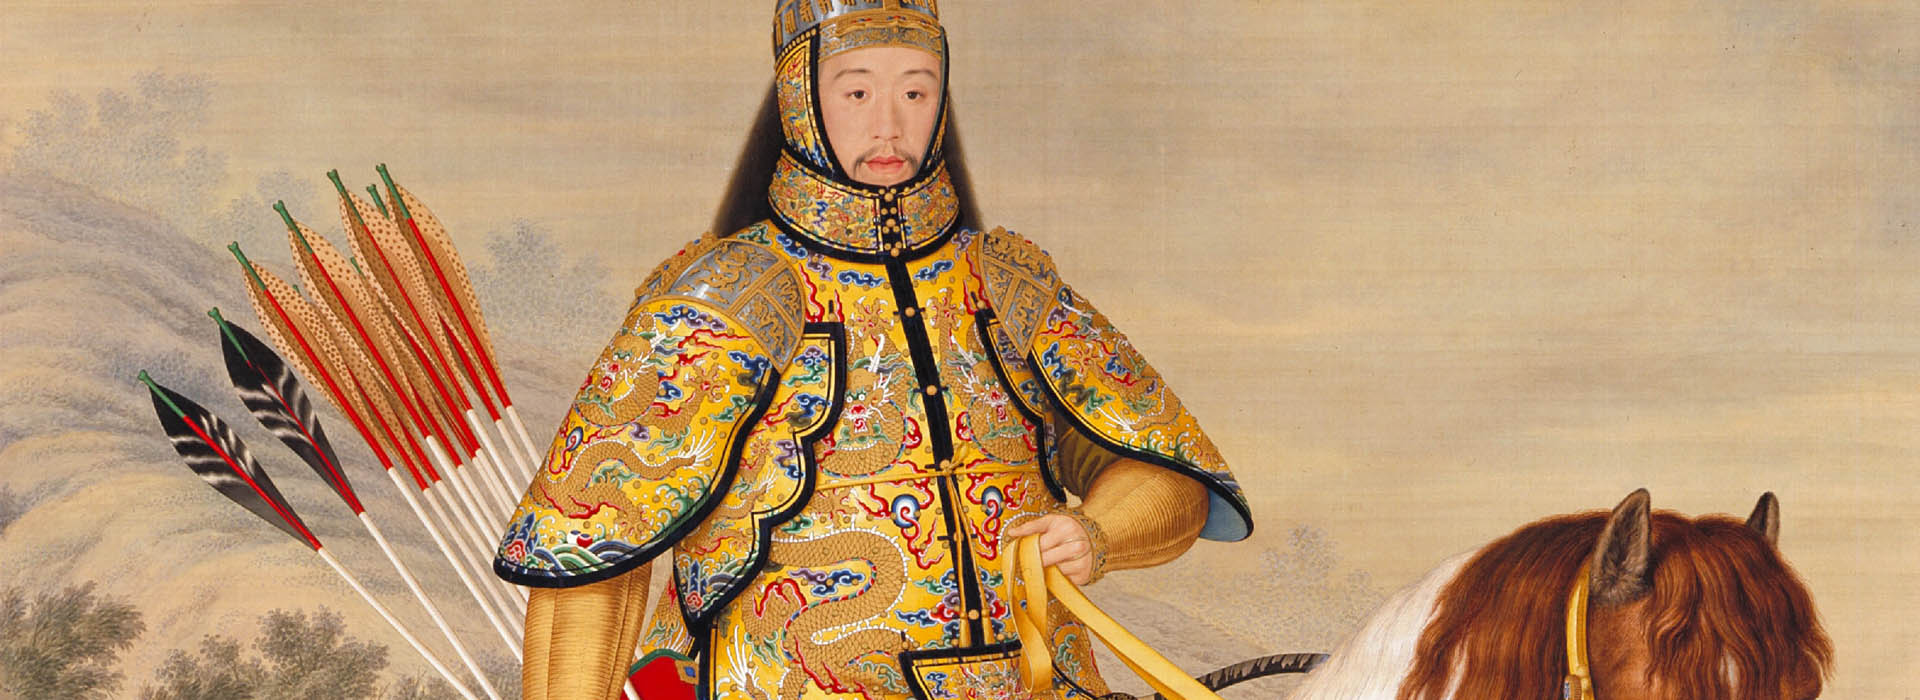 MASTERPIECES FROM THE FORBIDDEN CITY. QIANLONG AND HIS COURT